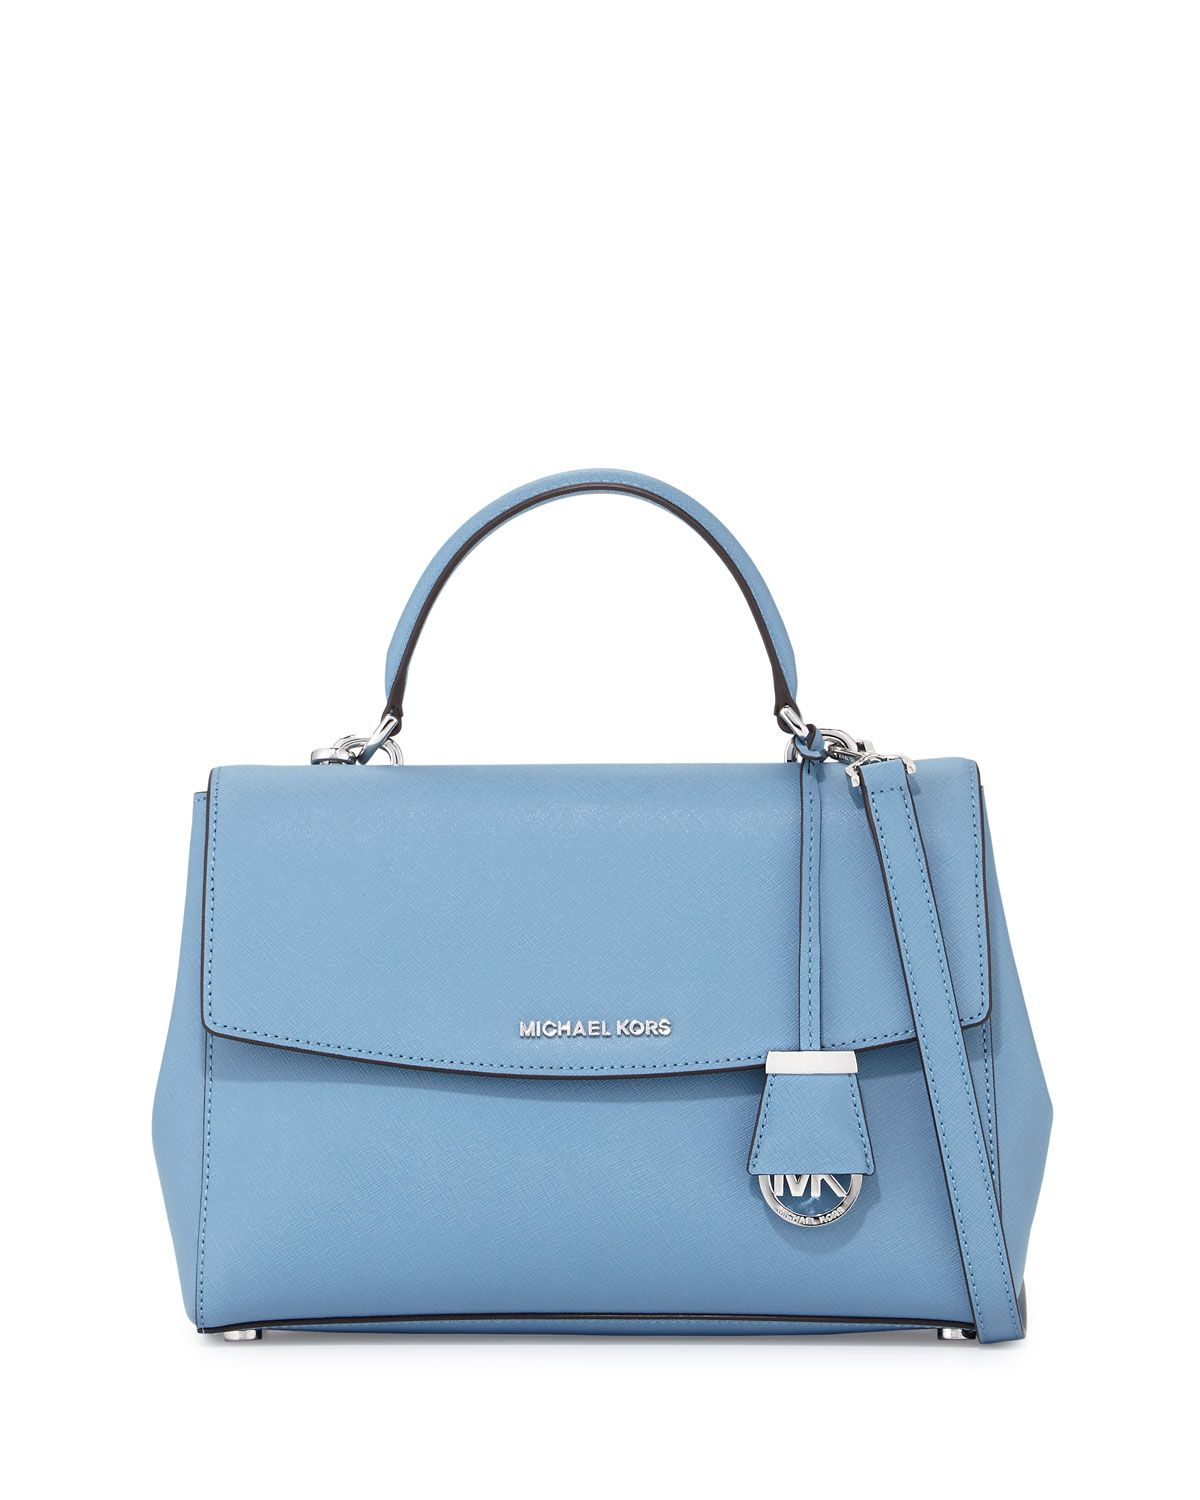 572e7a795965b2 MICHAEL Michael Kors Ava Medium Saffiano Leather Satchel Bag, Sky (Blue)